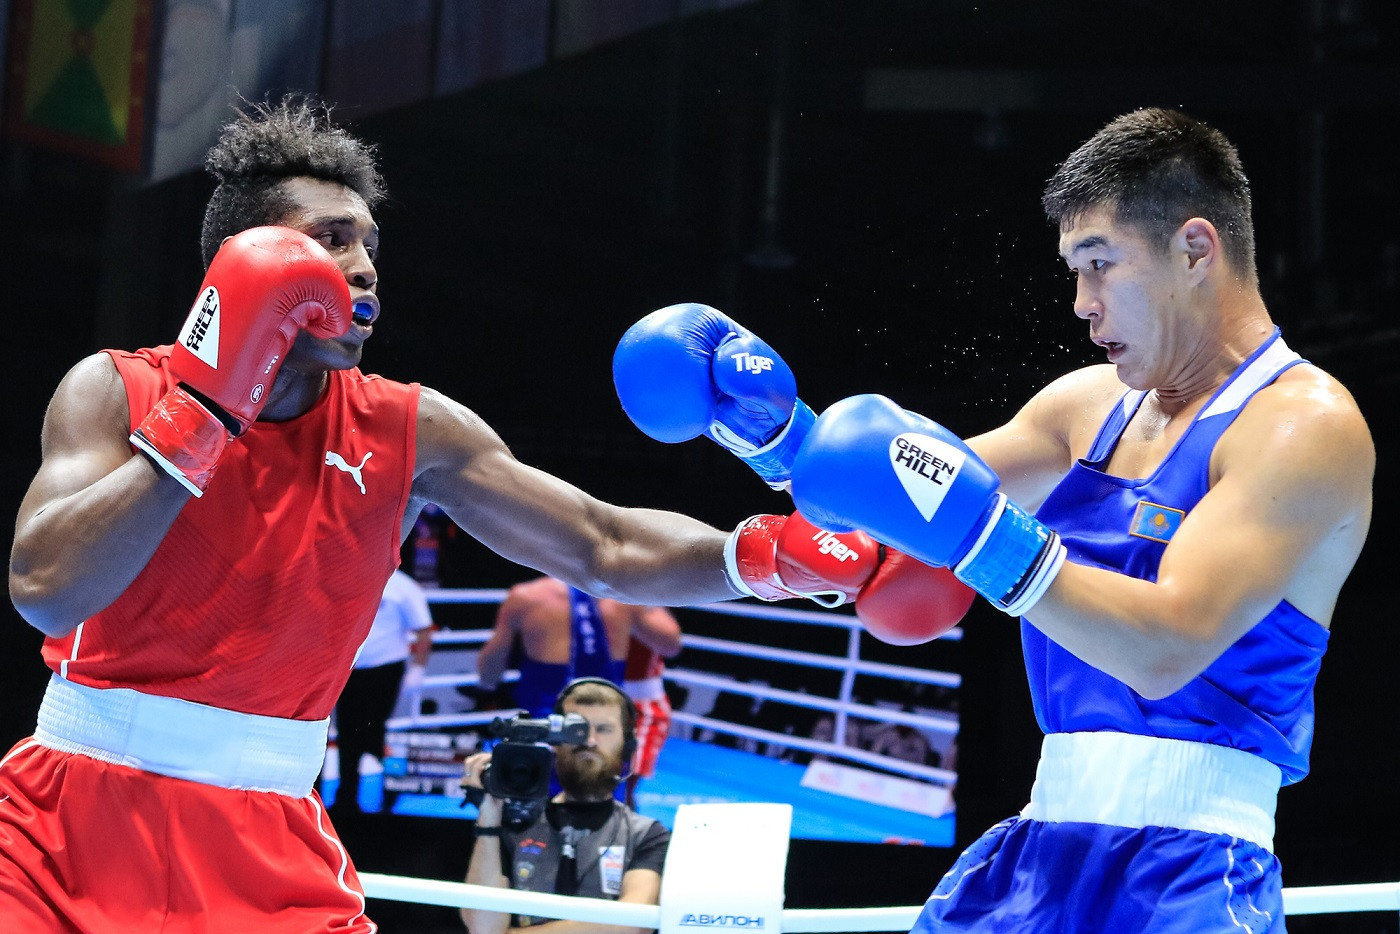 Reigning light-heavyweight world champion Bekzad Nurdauletov, in blue, is among the boxers from Kazakhstan to travel to the US to train ©ASBC